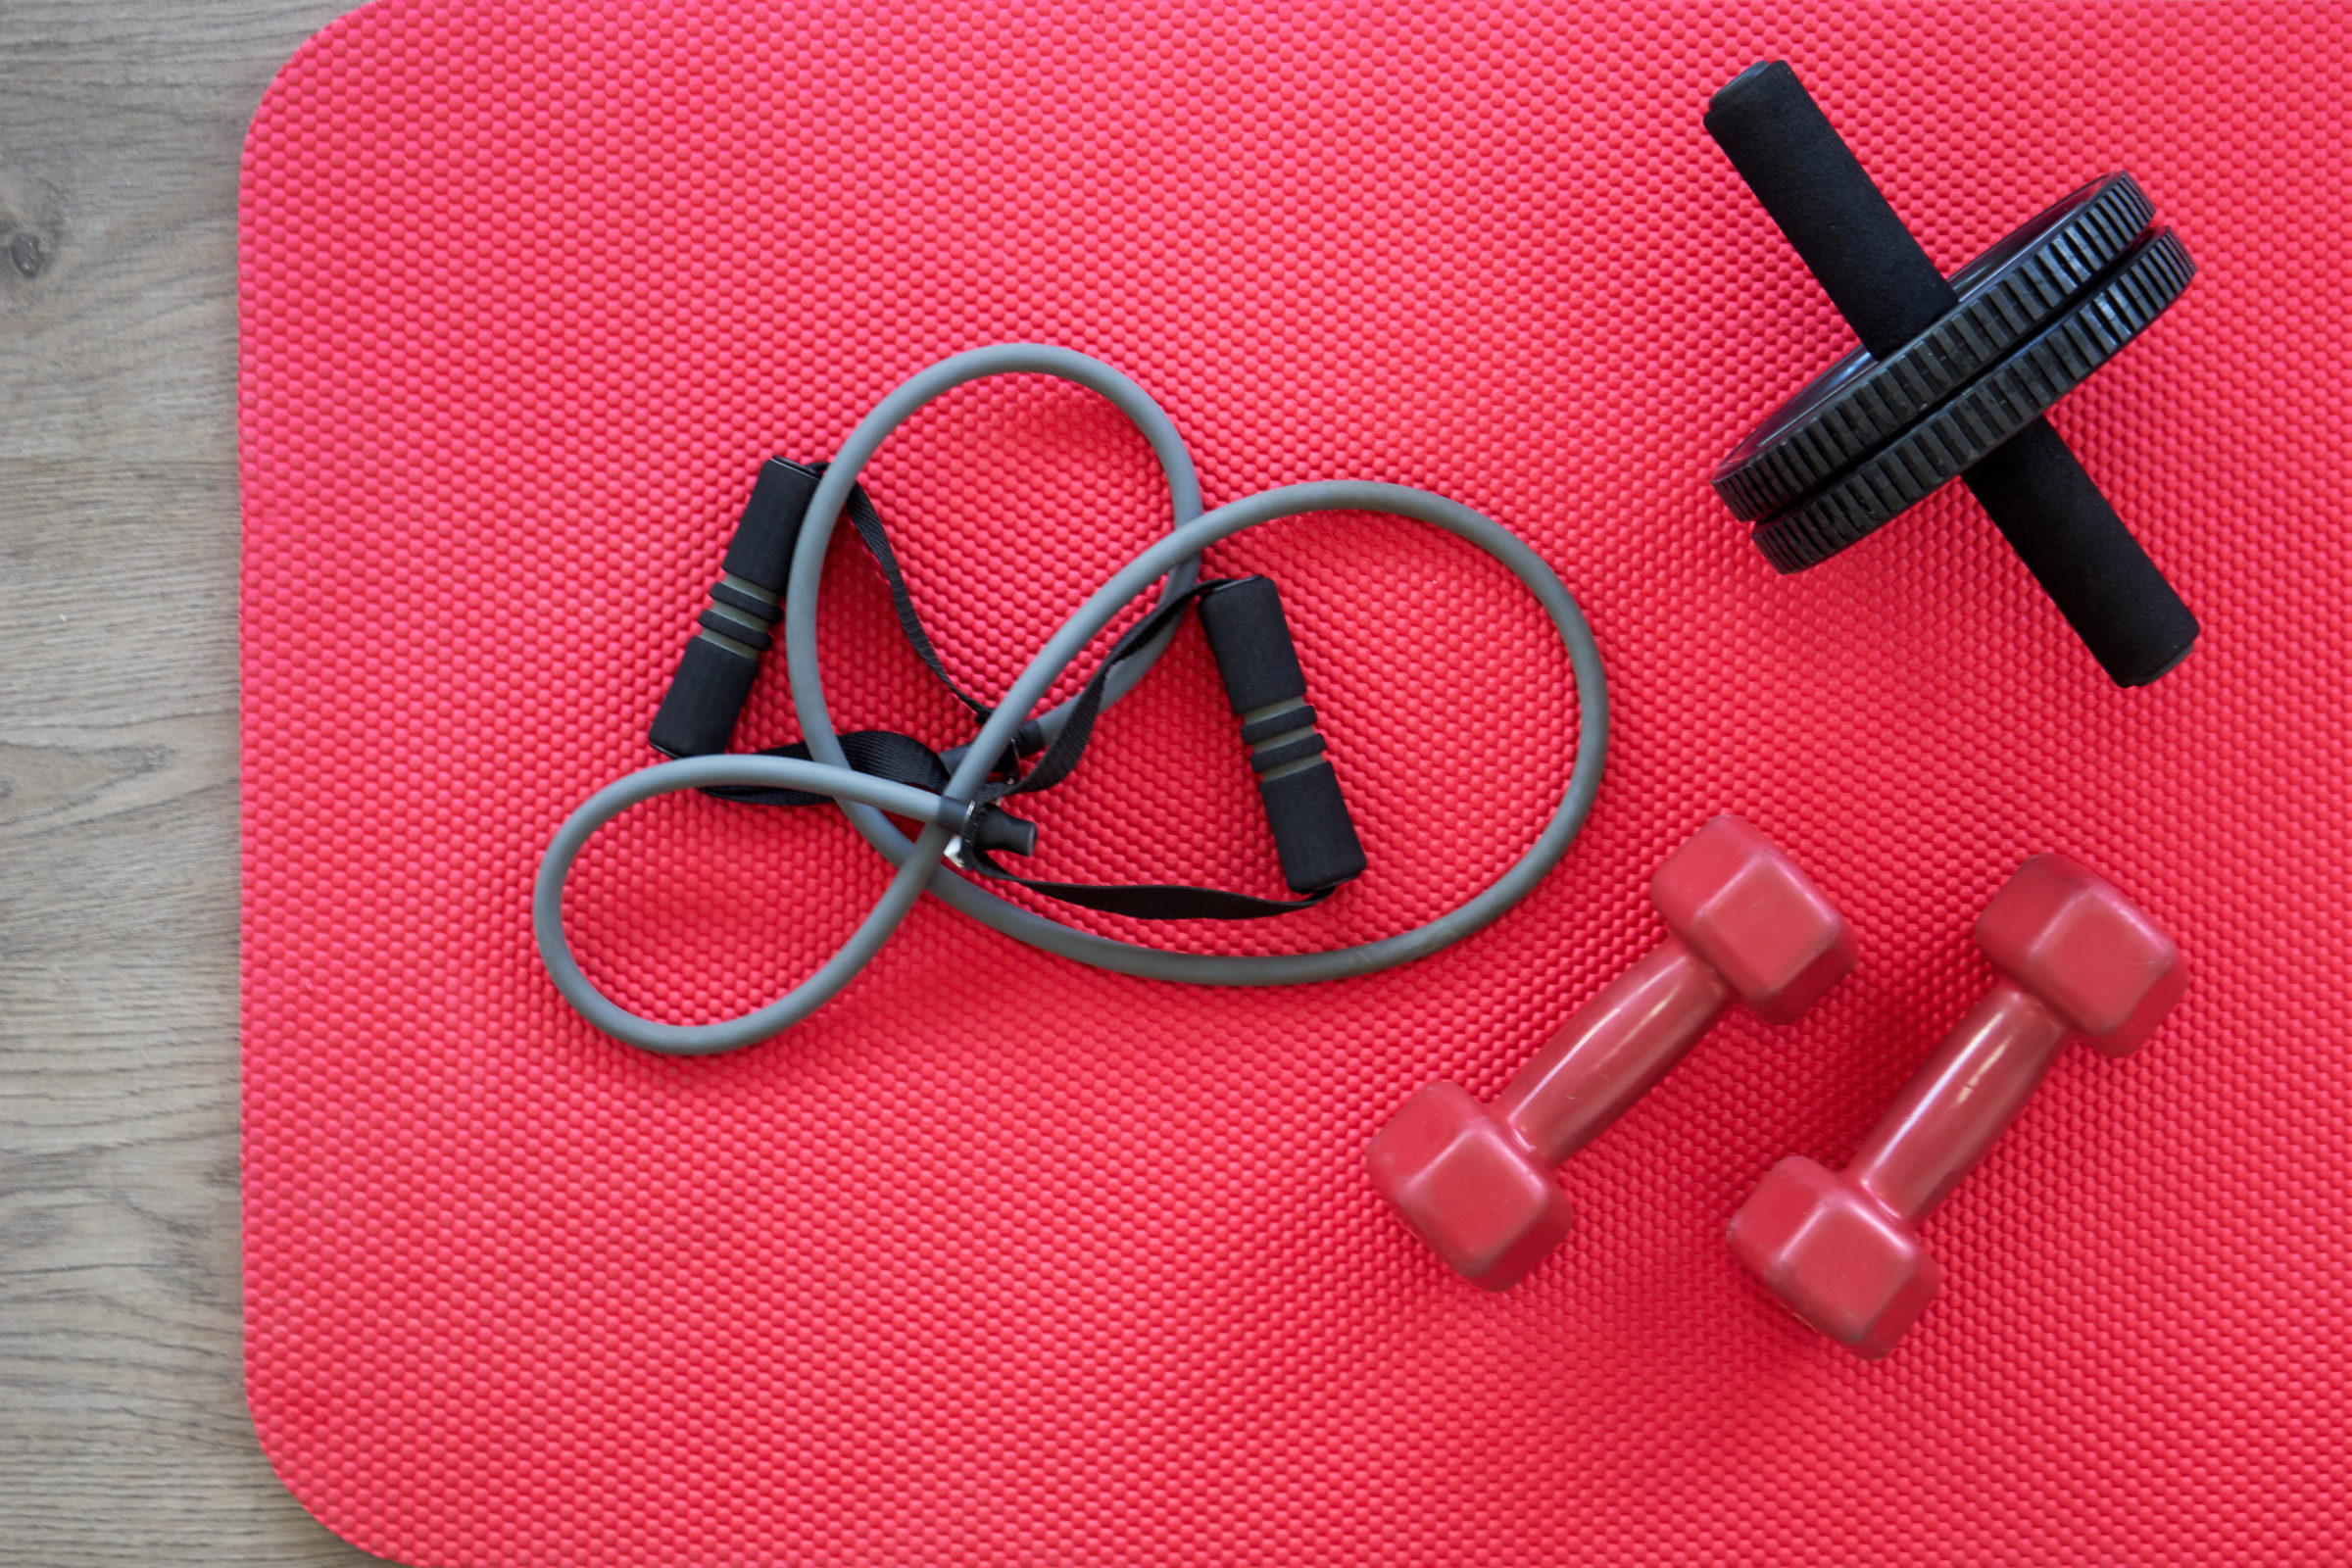 gym equipment on red mat as background top view PLBAEVD